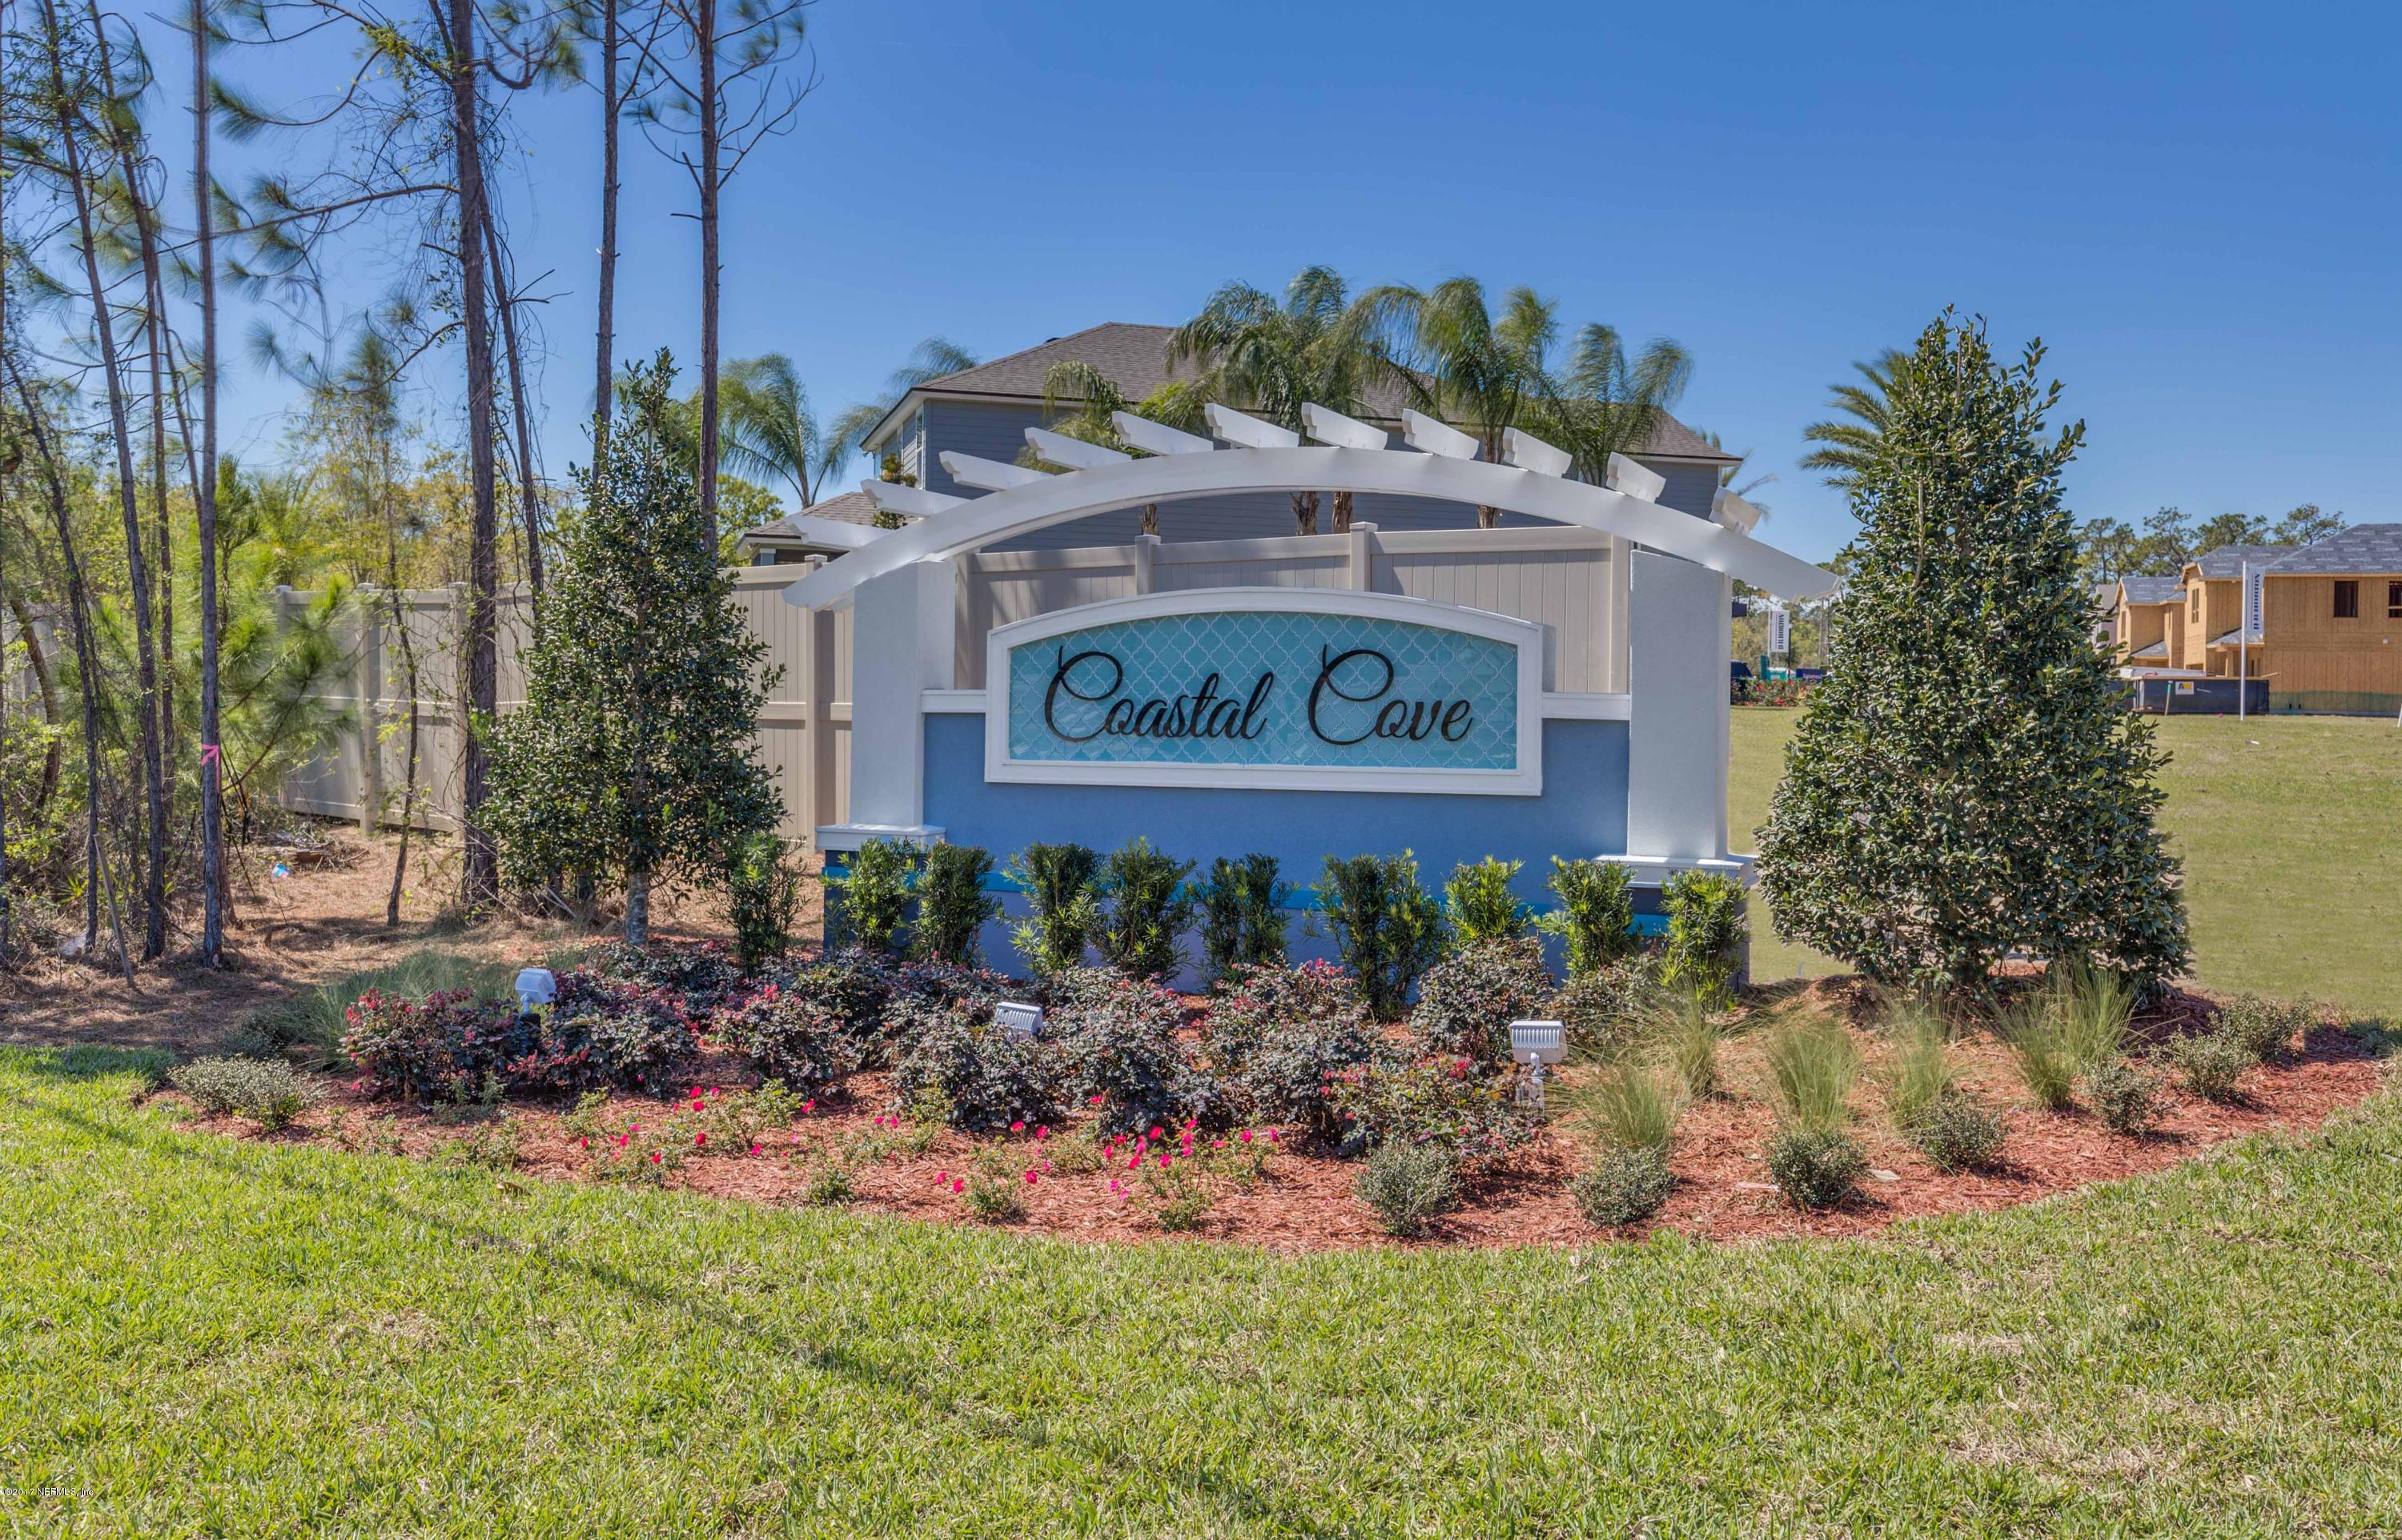 3893 COASTAL COVE, JACKSONVILLE, FLORIDA 32224, 3 Bedrooms Bedrooms, ,2 BathroomsBathrooms,Residential - single family,For sale,COASTAL COVE,946250